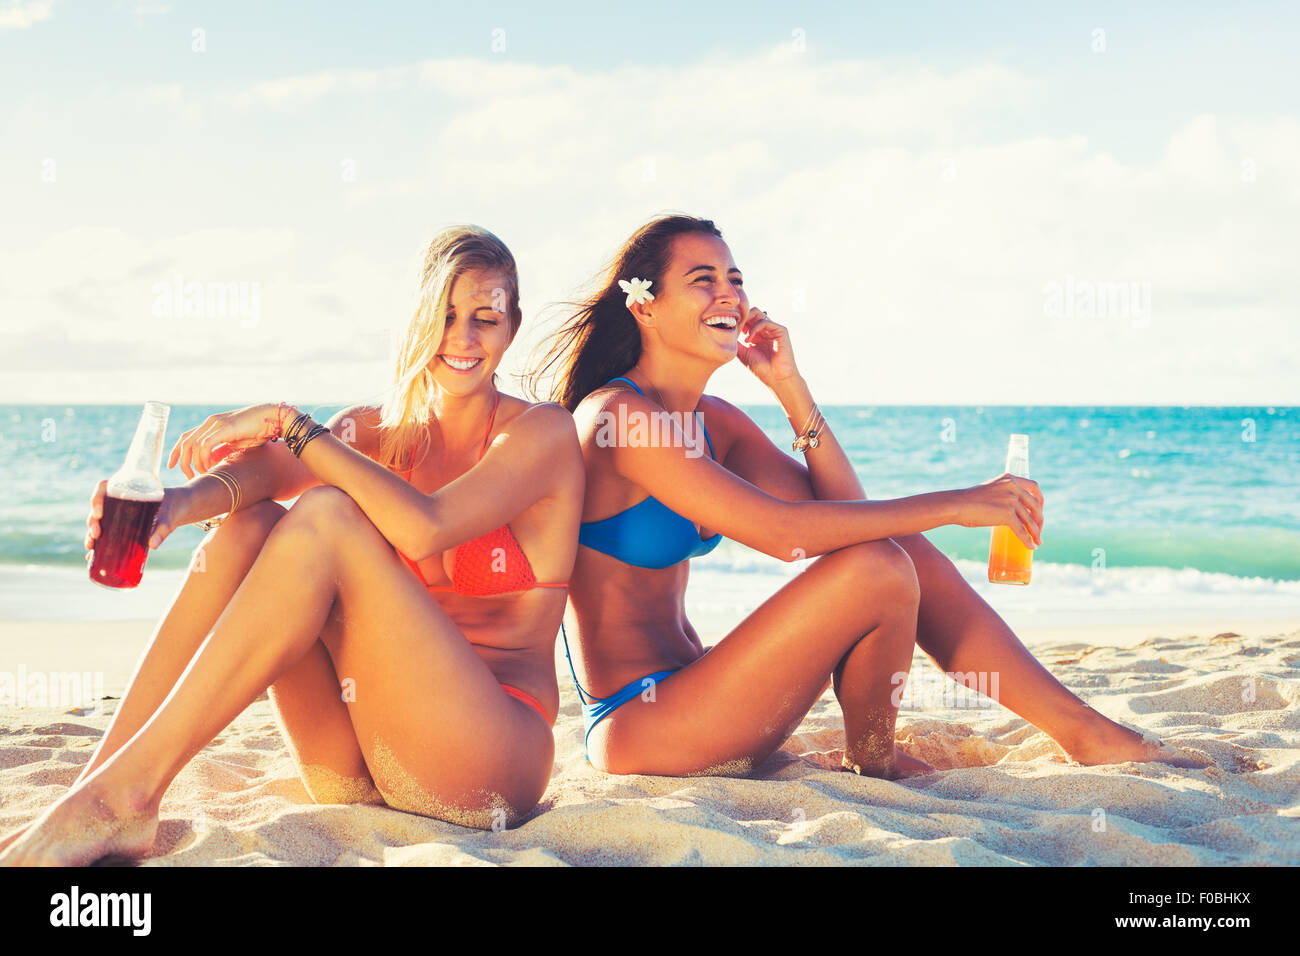 Summer Lifestyle, Girls Day at the Beach. Friends Hanging out at the Beach at Sunset. Happy Carefree Lifestyle - Stock Image